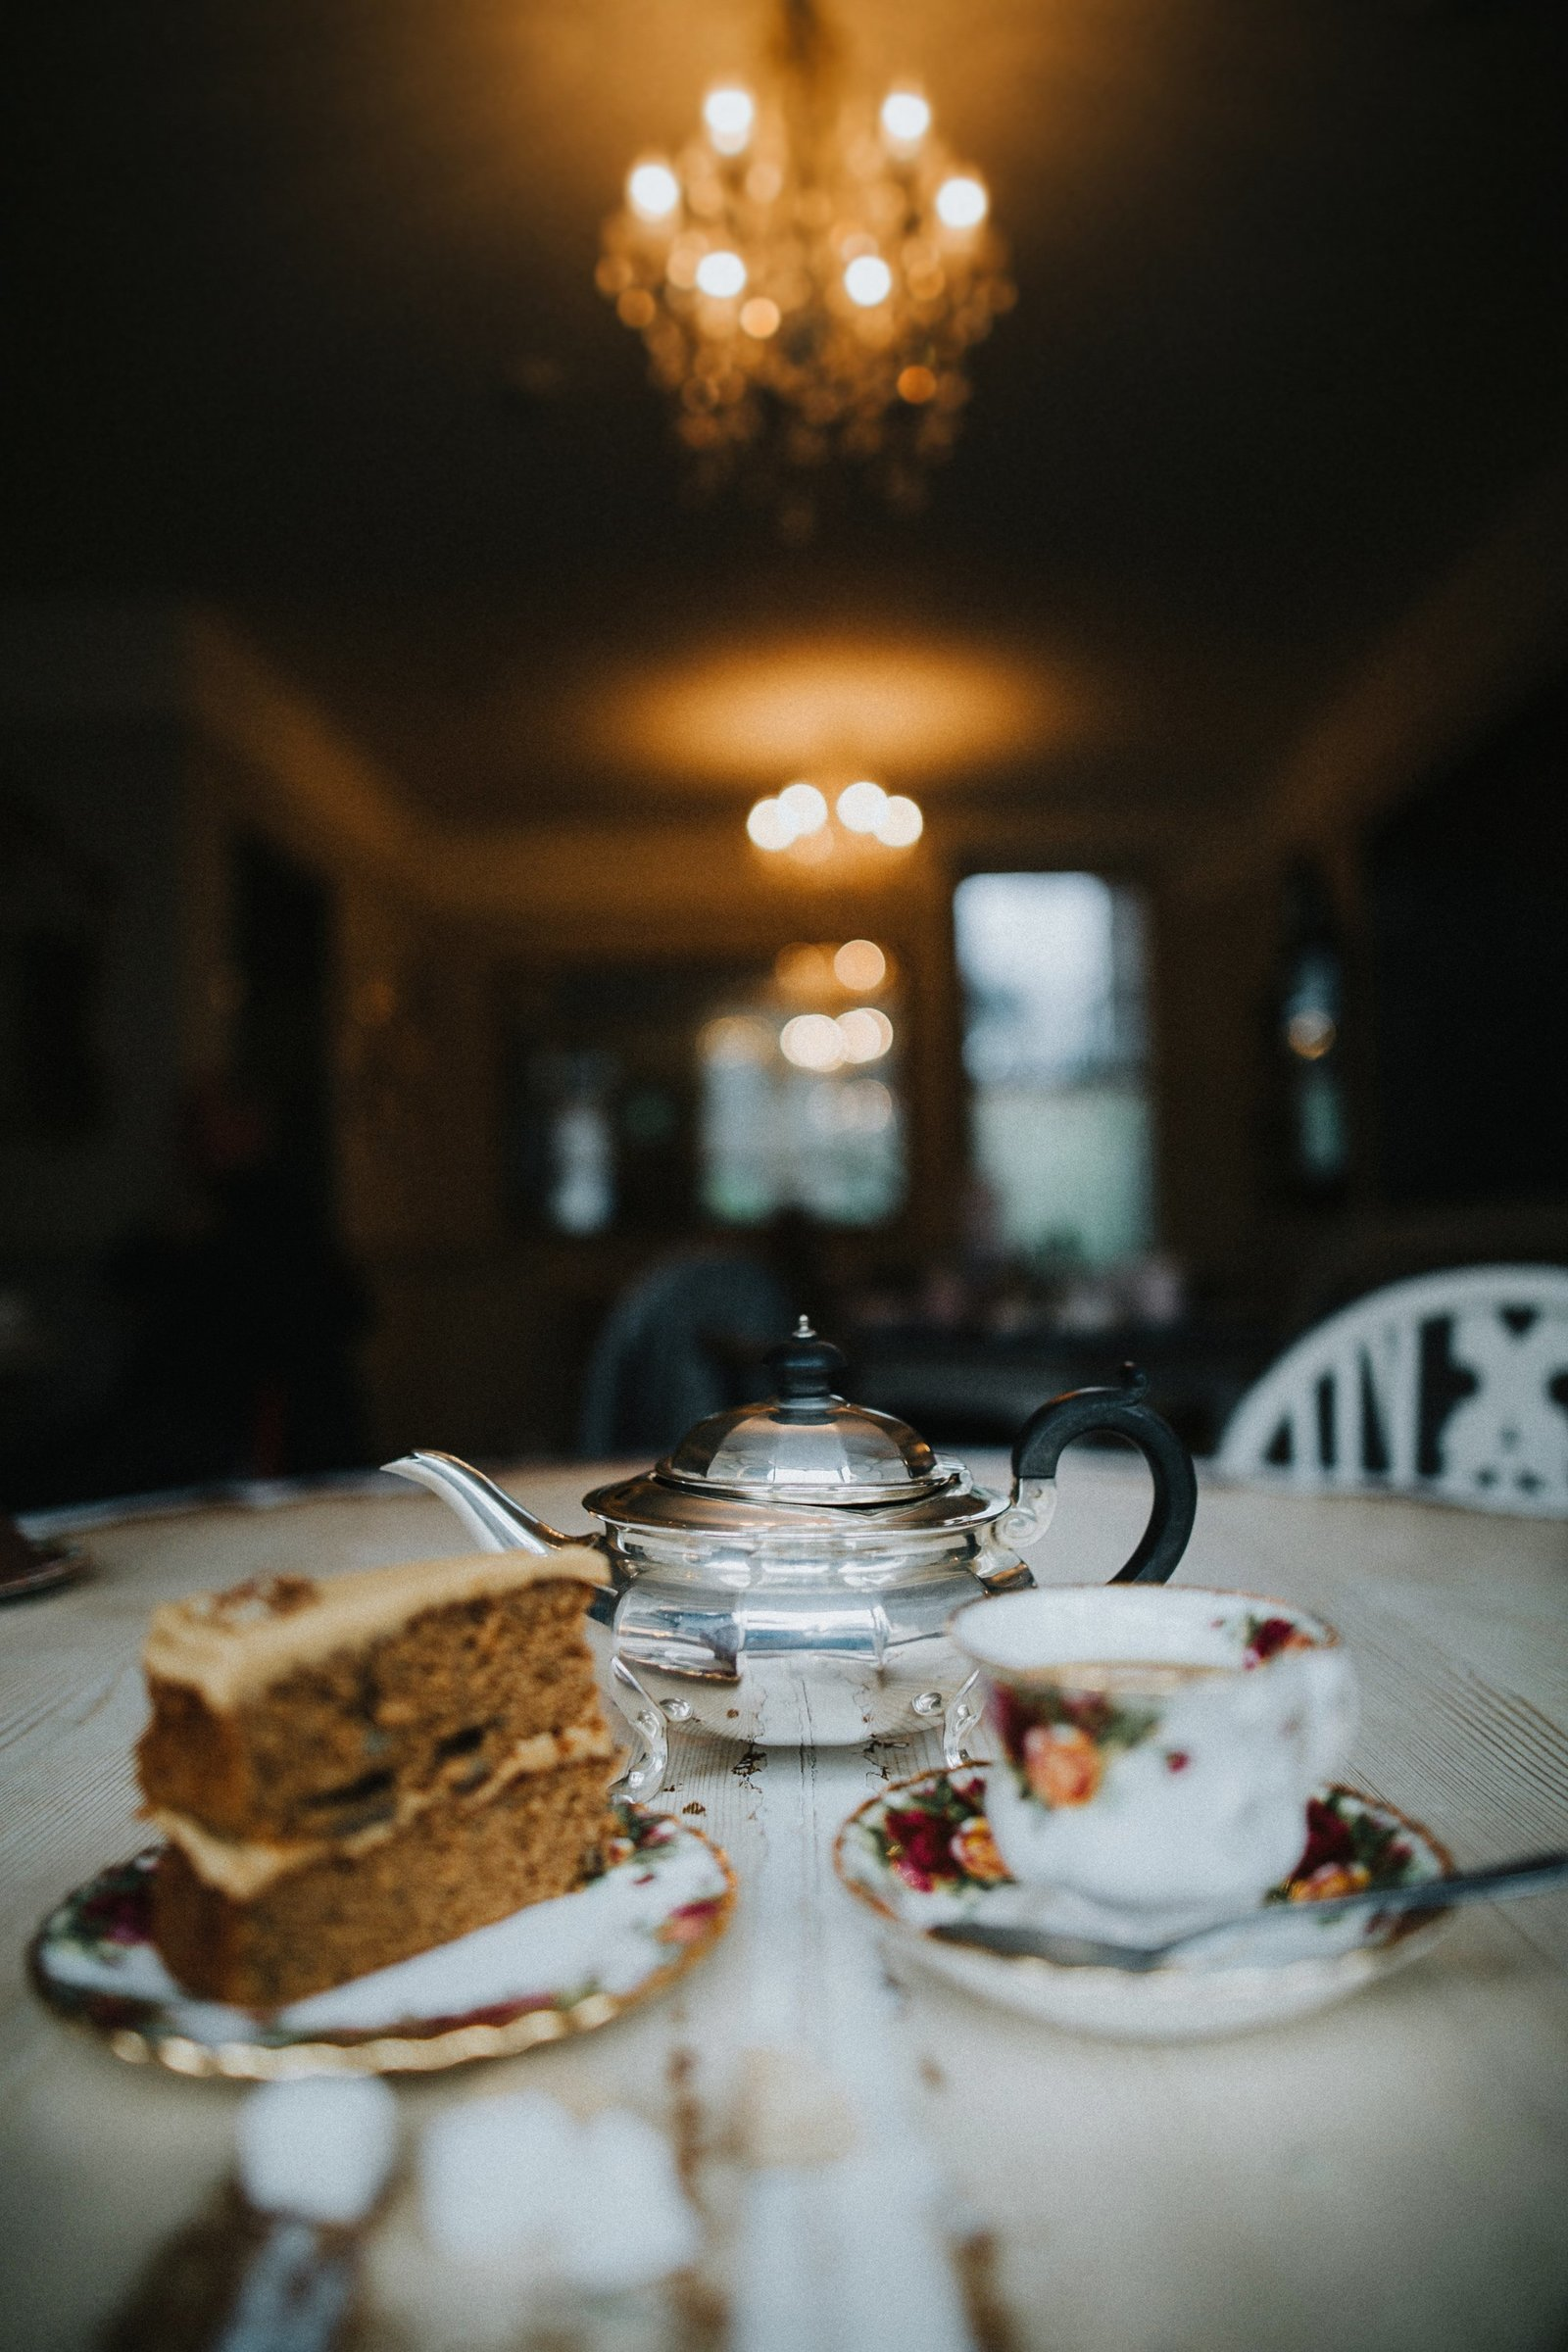 Teapot, teacup and cake set out on table at Baldry's Tearoom in Grasmere Village, The Lake District